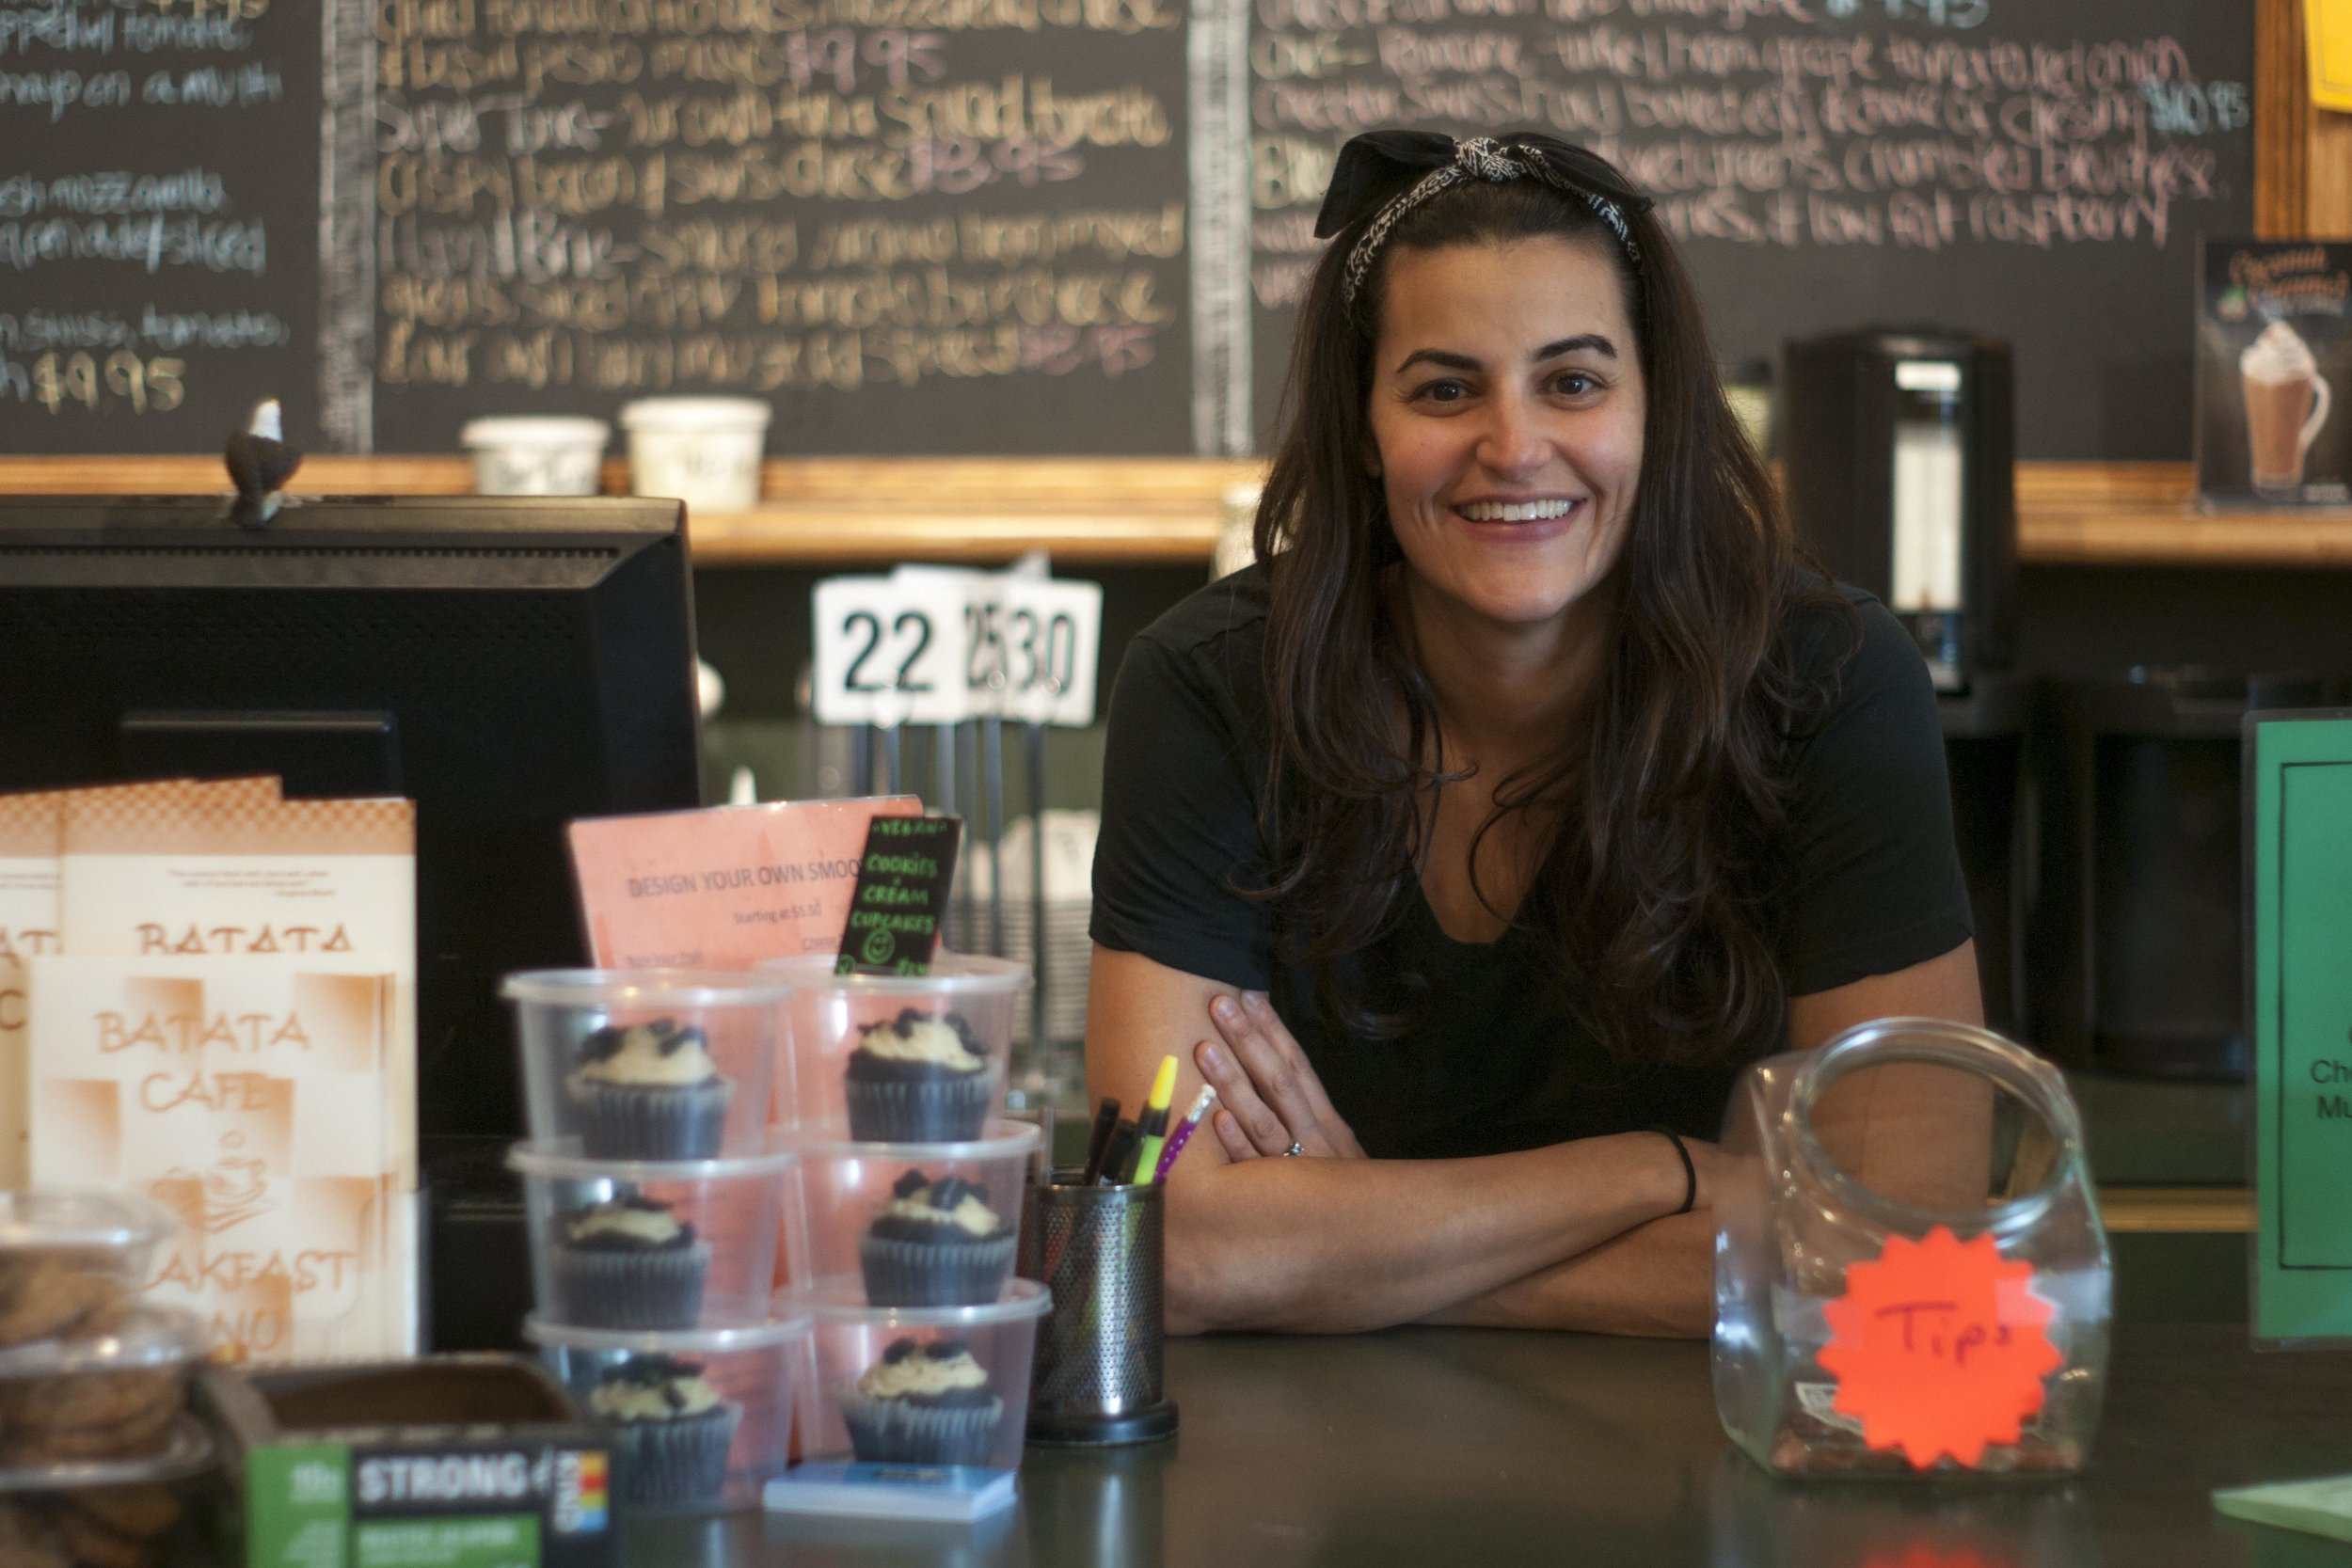 Long Islander News photos/David Weber  Nicole Offermann, owner of Batata Café, was inspired to open a location with natural ingredients after her travels to Central America.